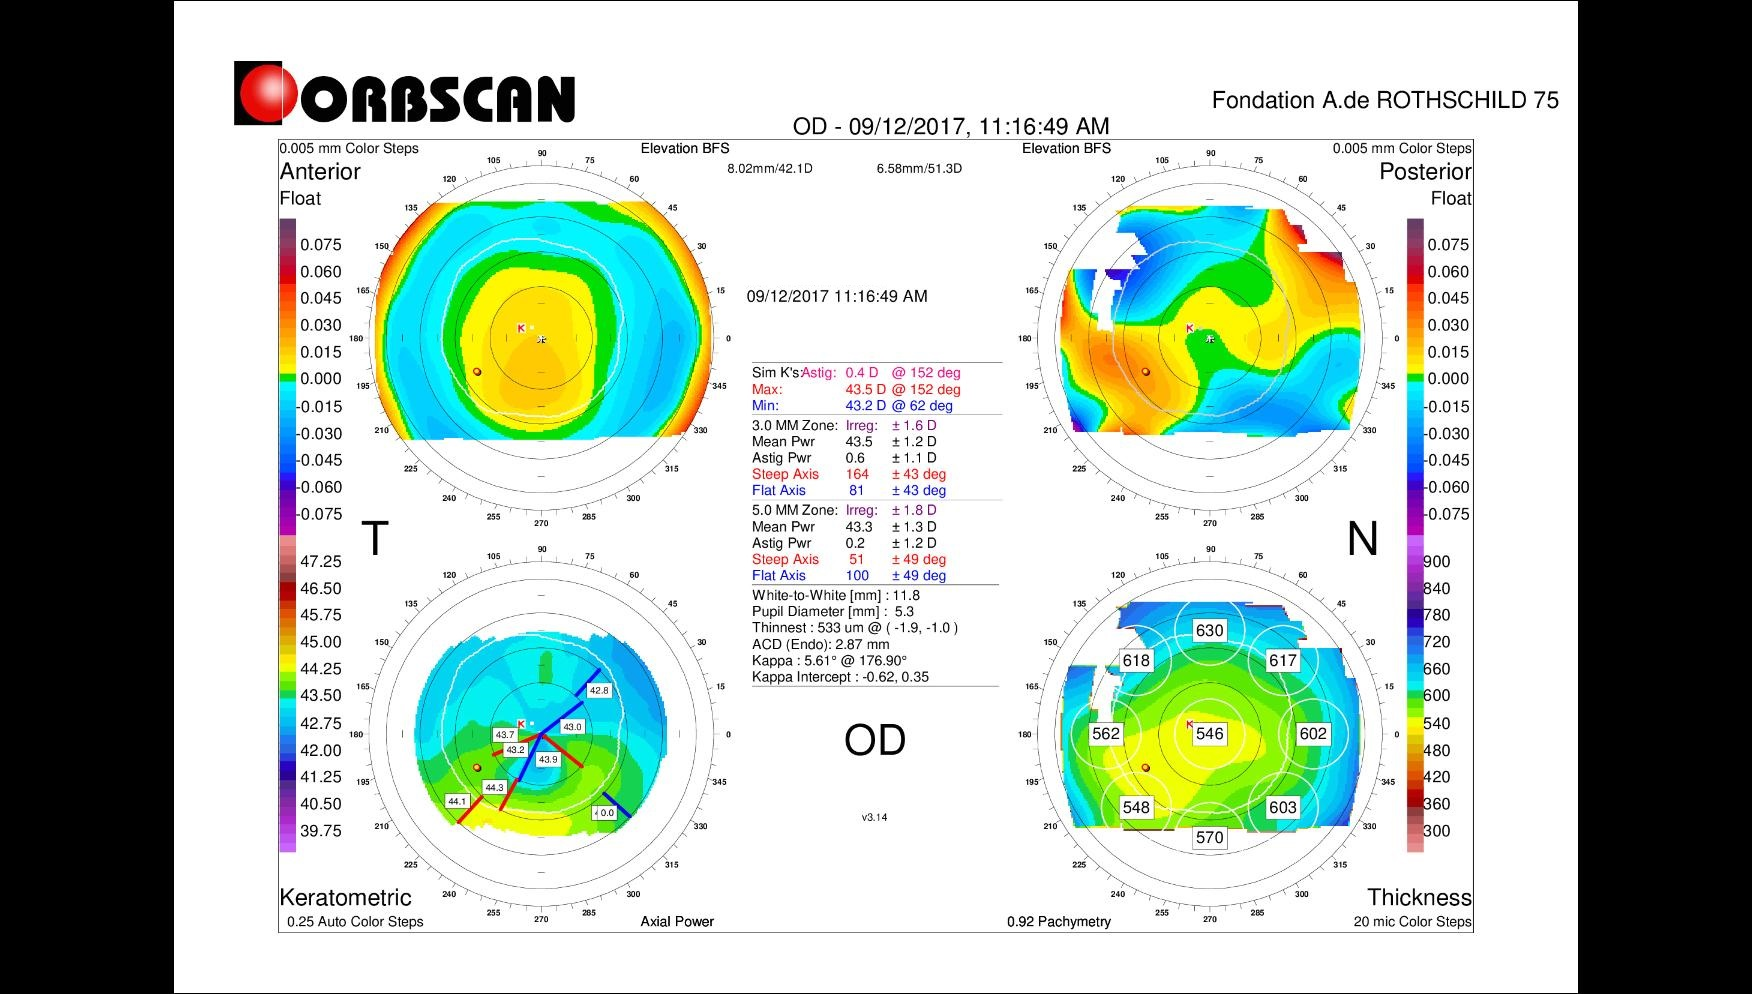 corneal irregularities on orbscan map